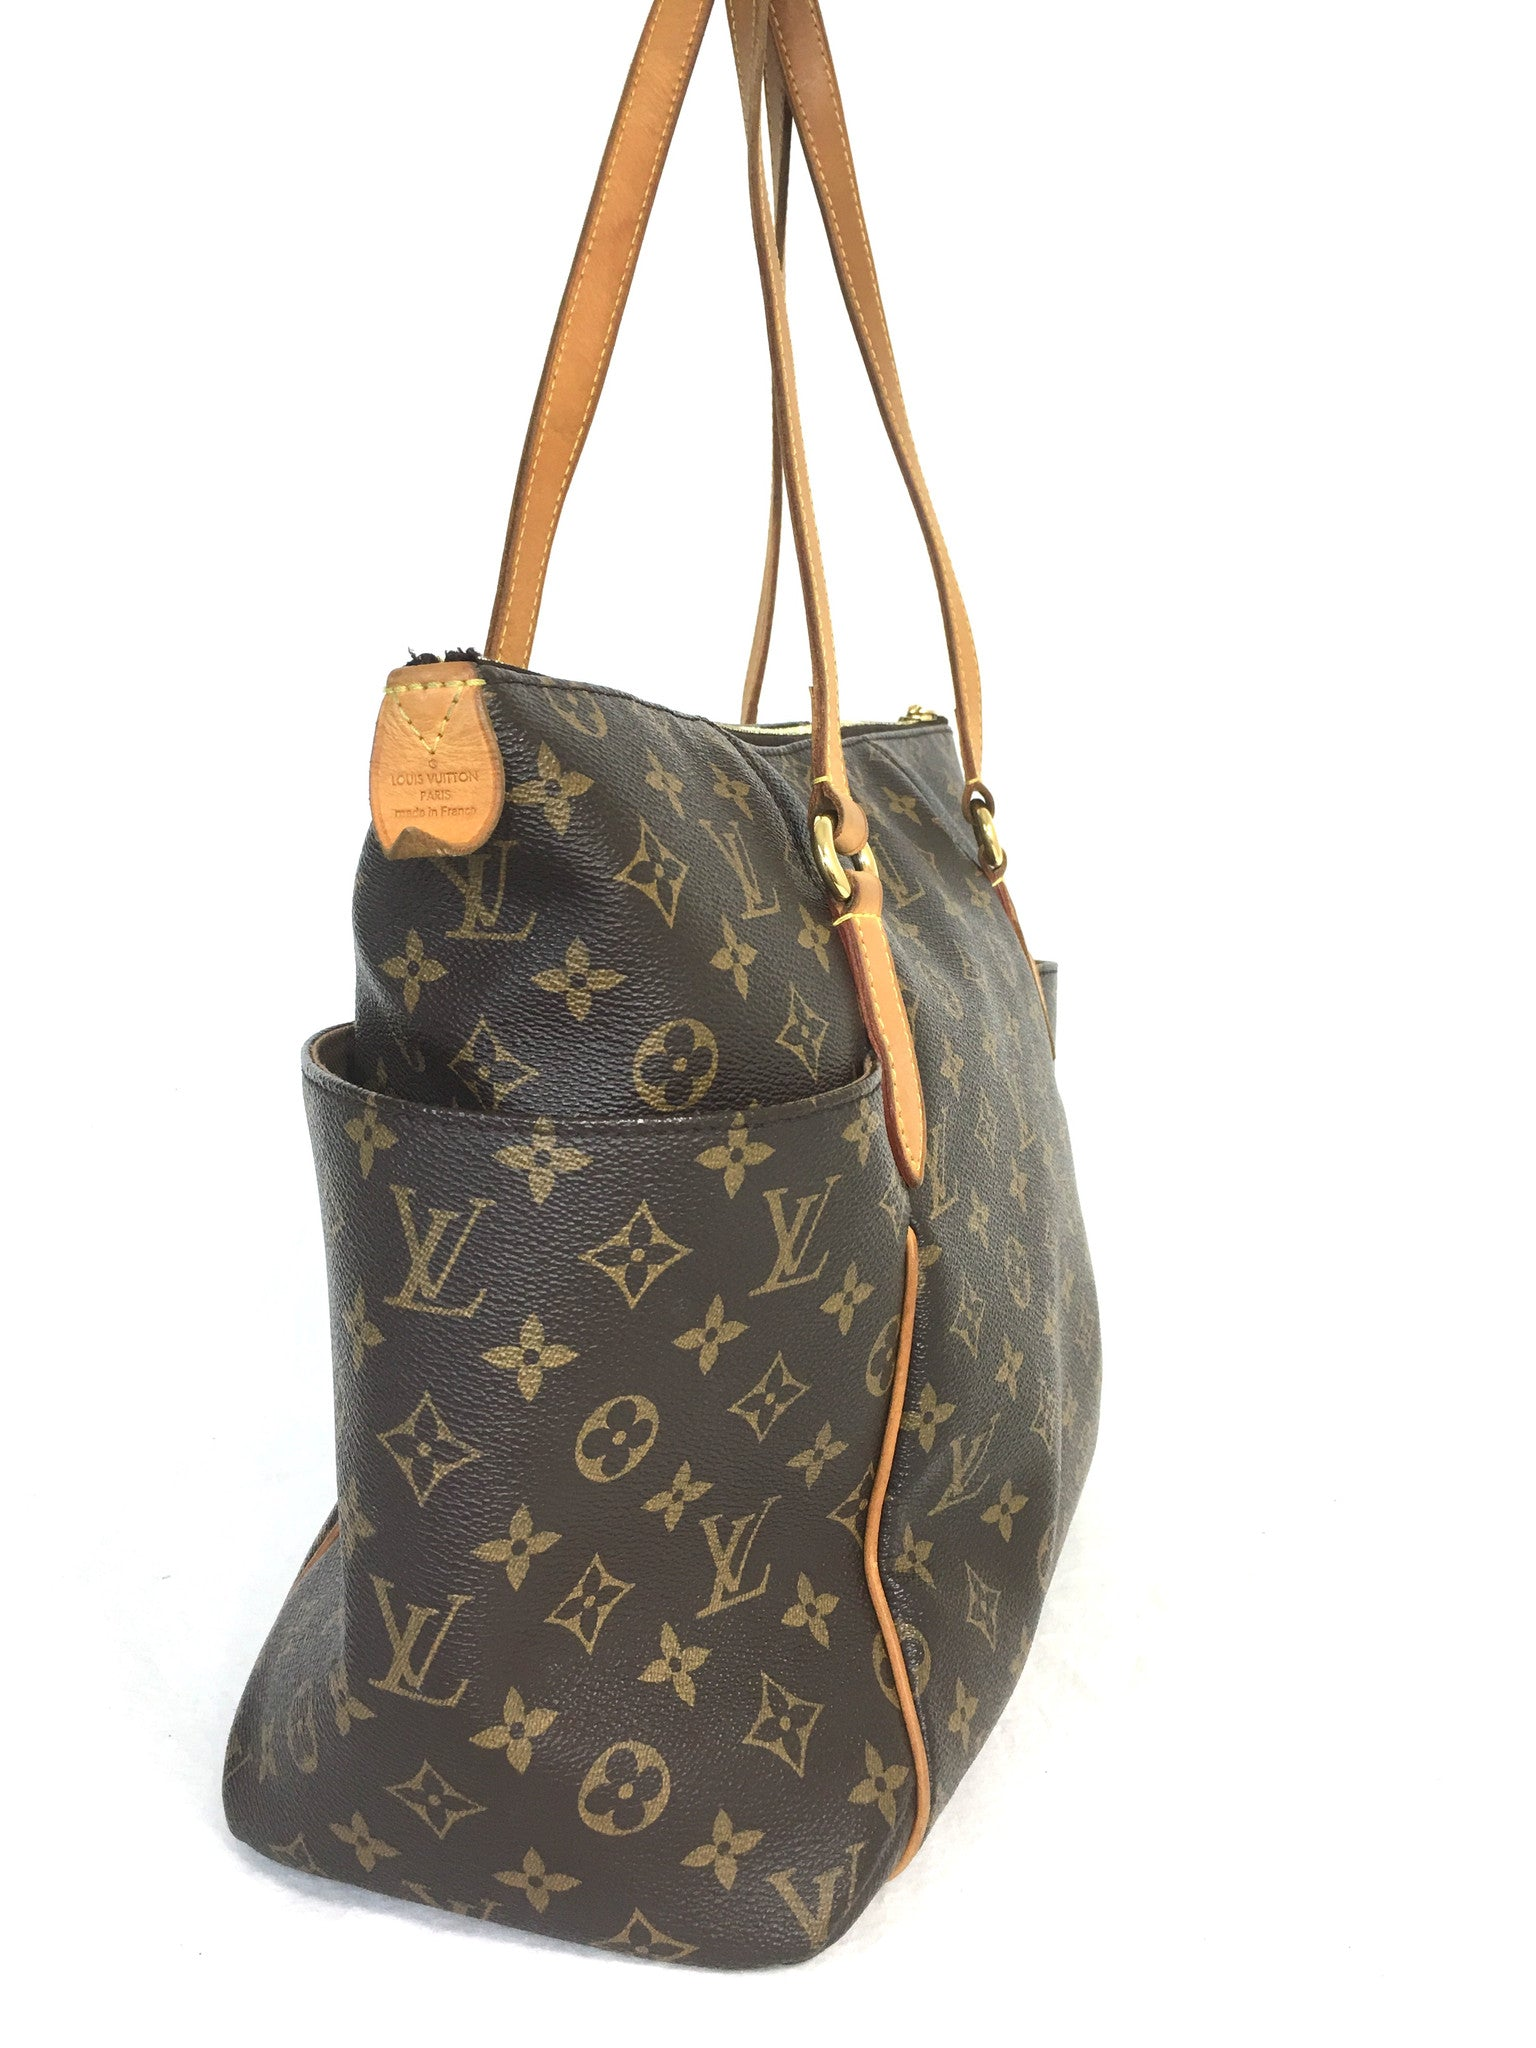 88054b546e5 LOUIS VUITTON Totally MM Bag in Monogram – Pretty Things Hoarder